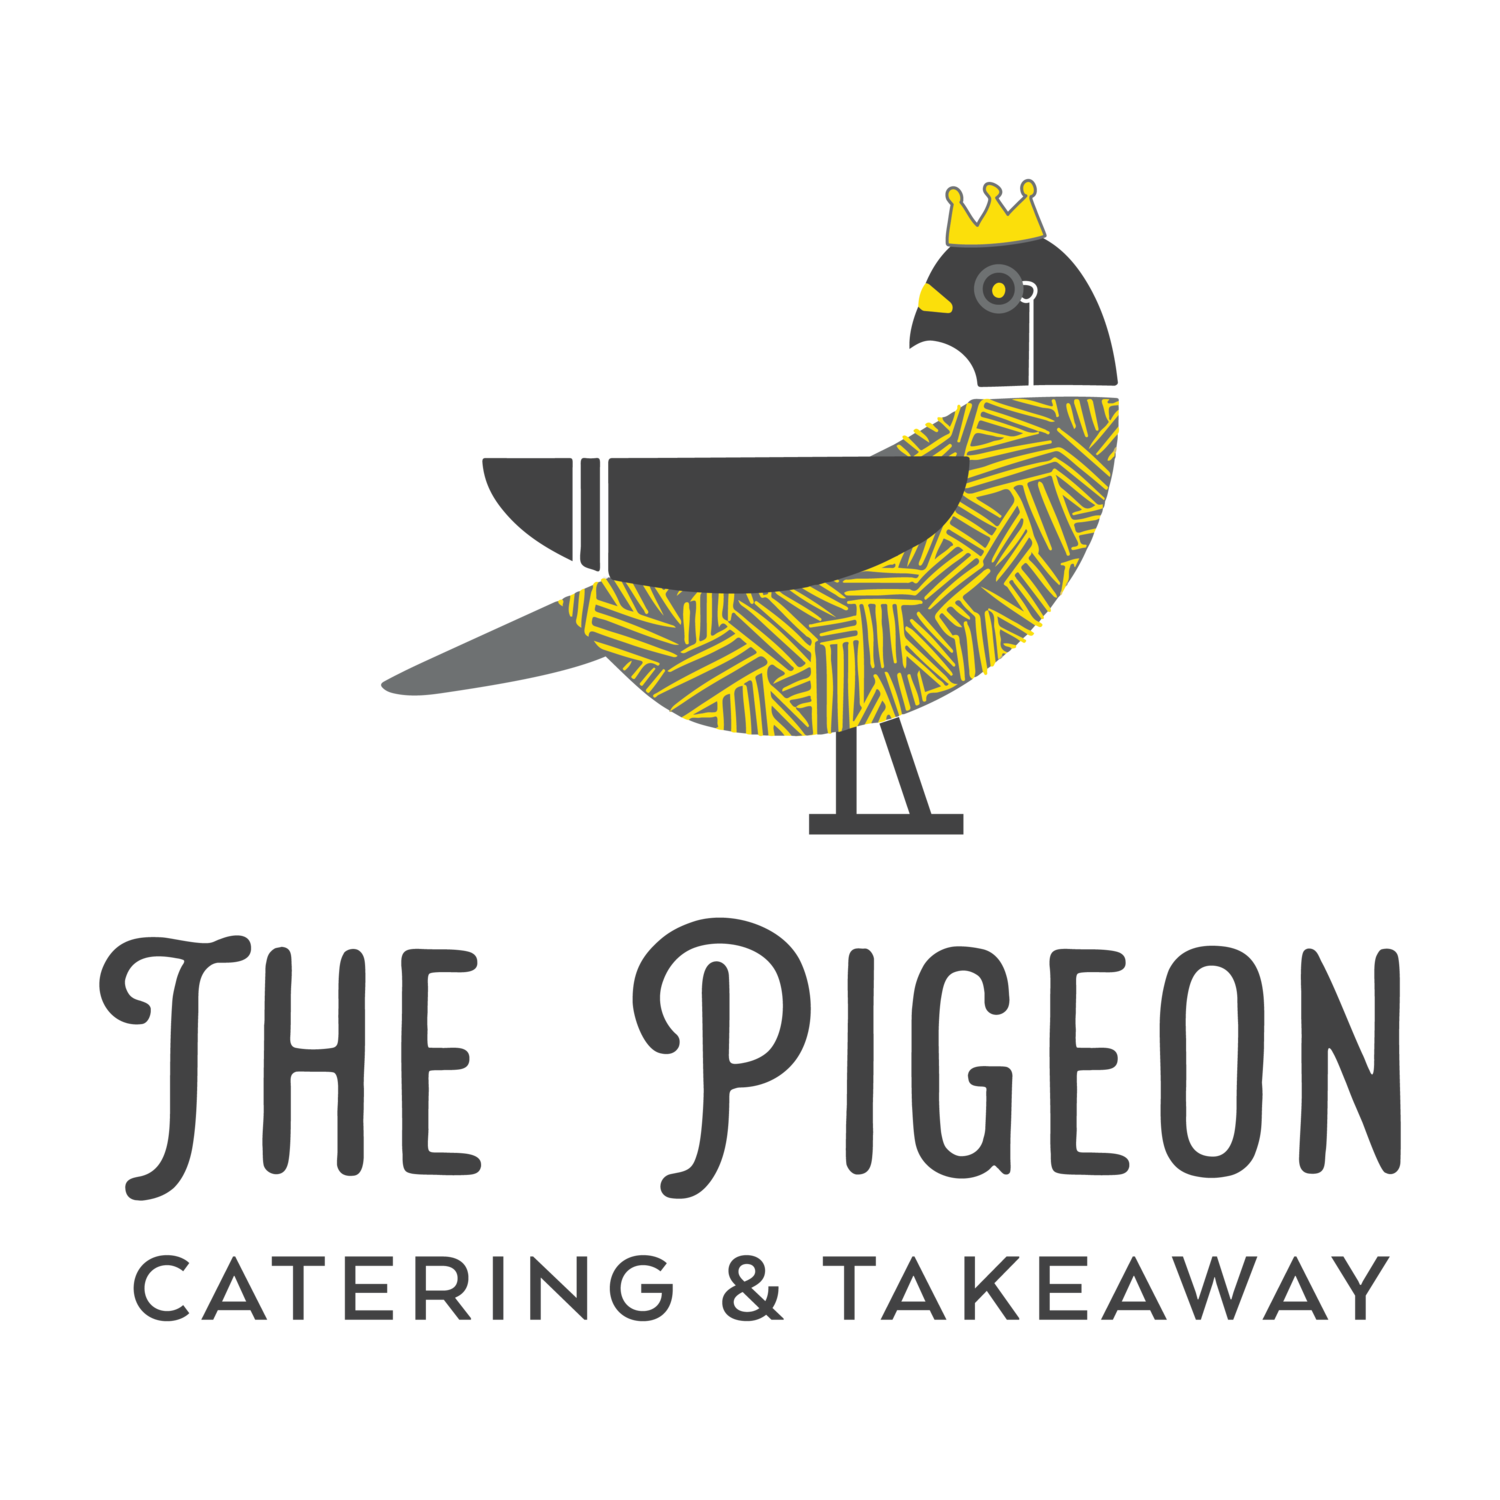 THE PIGEON - catering & takeaway